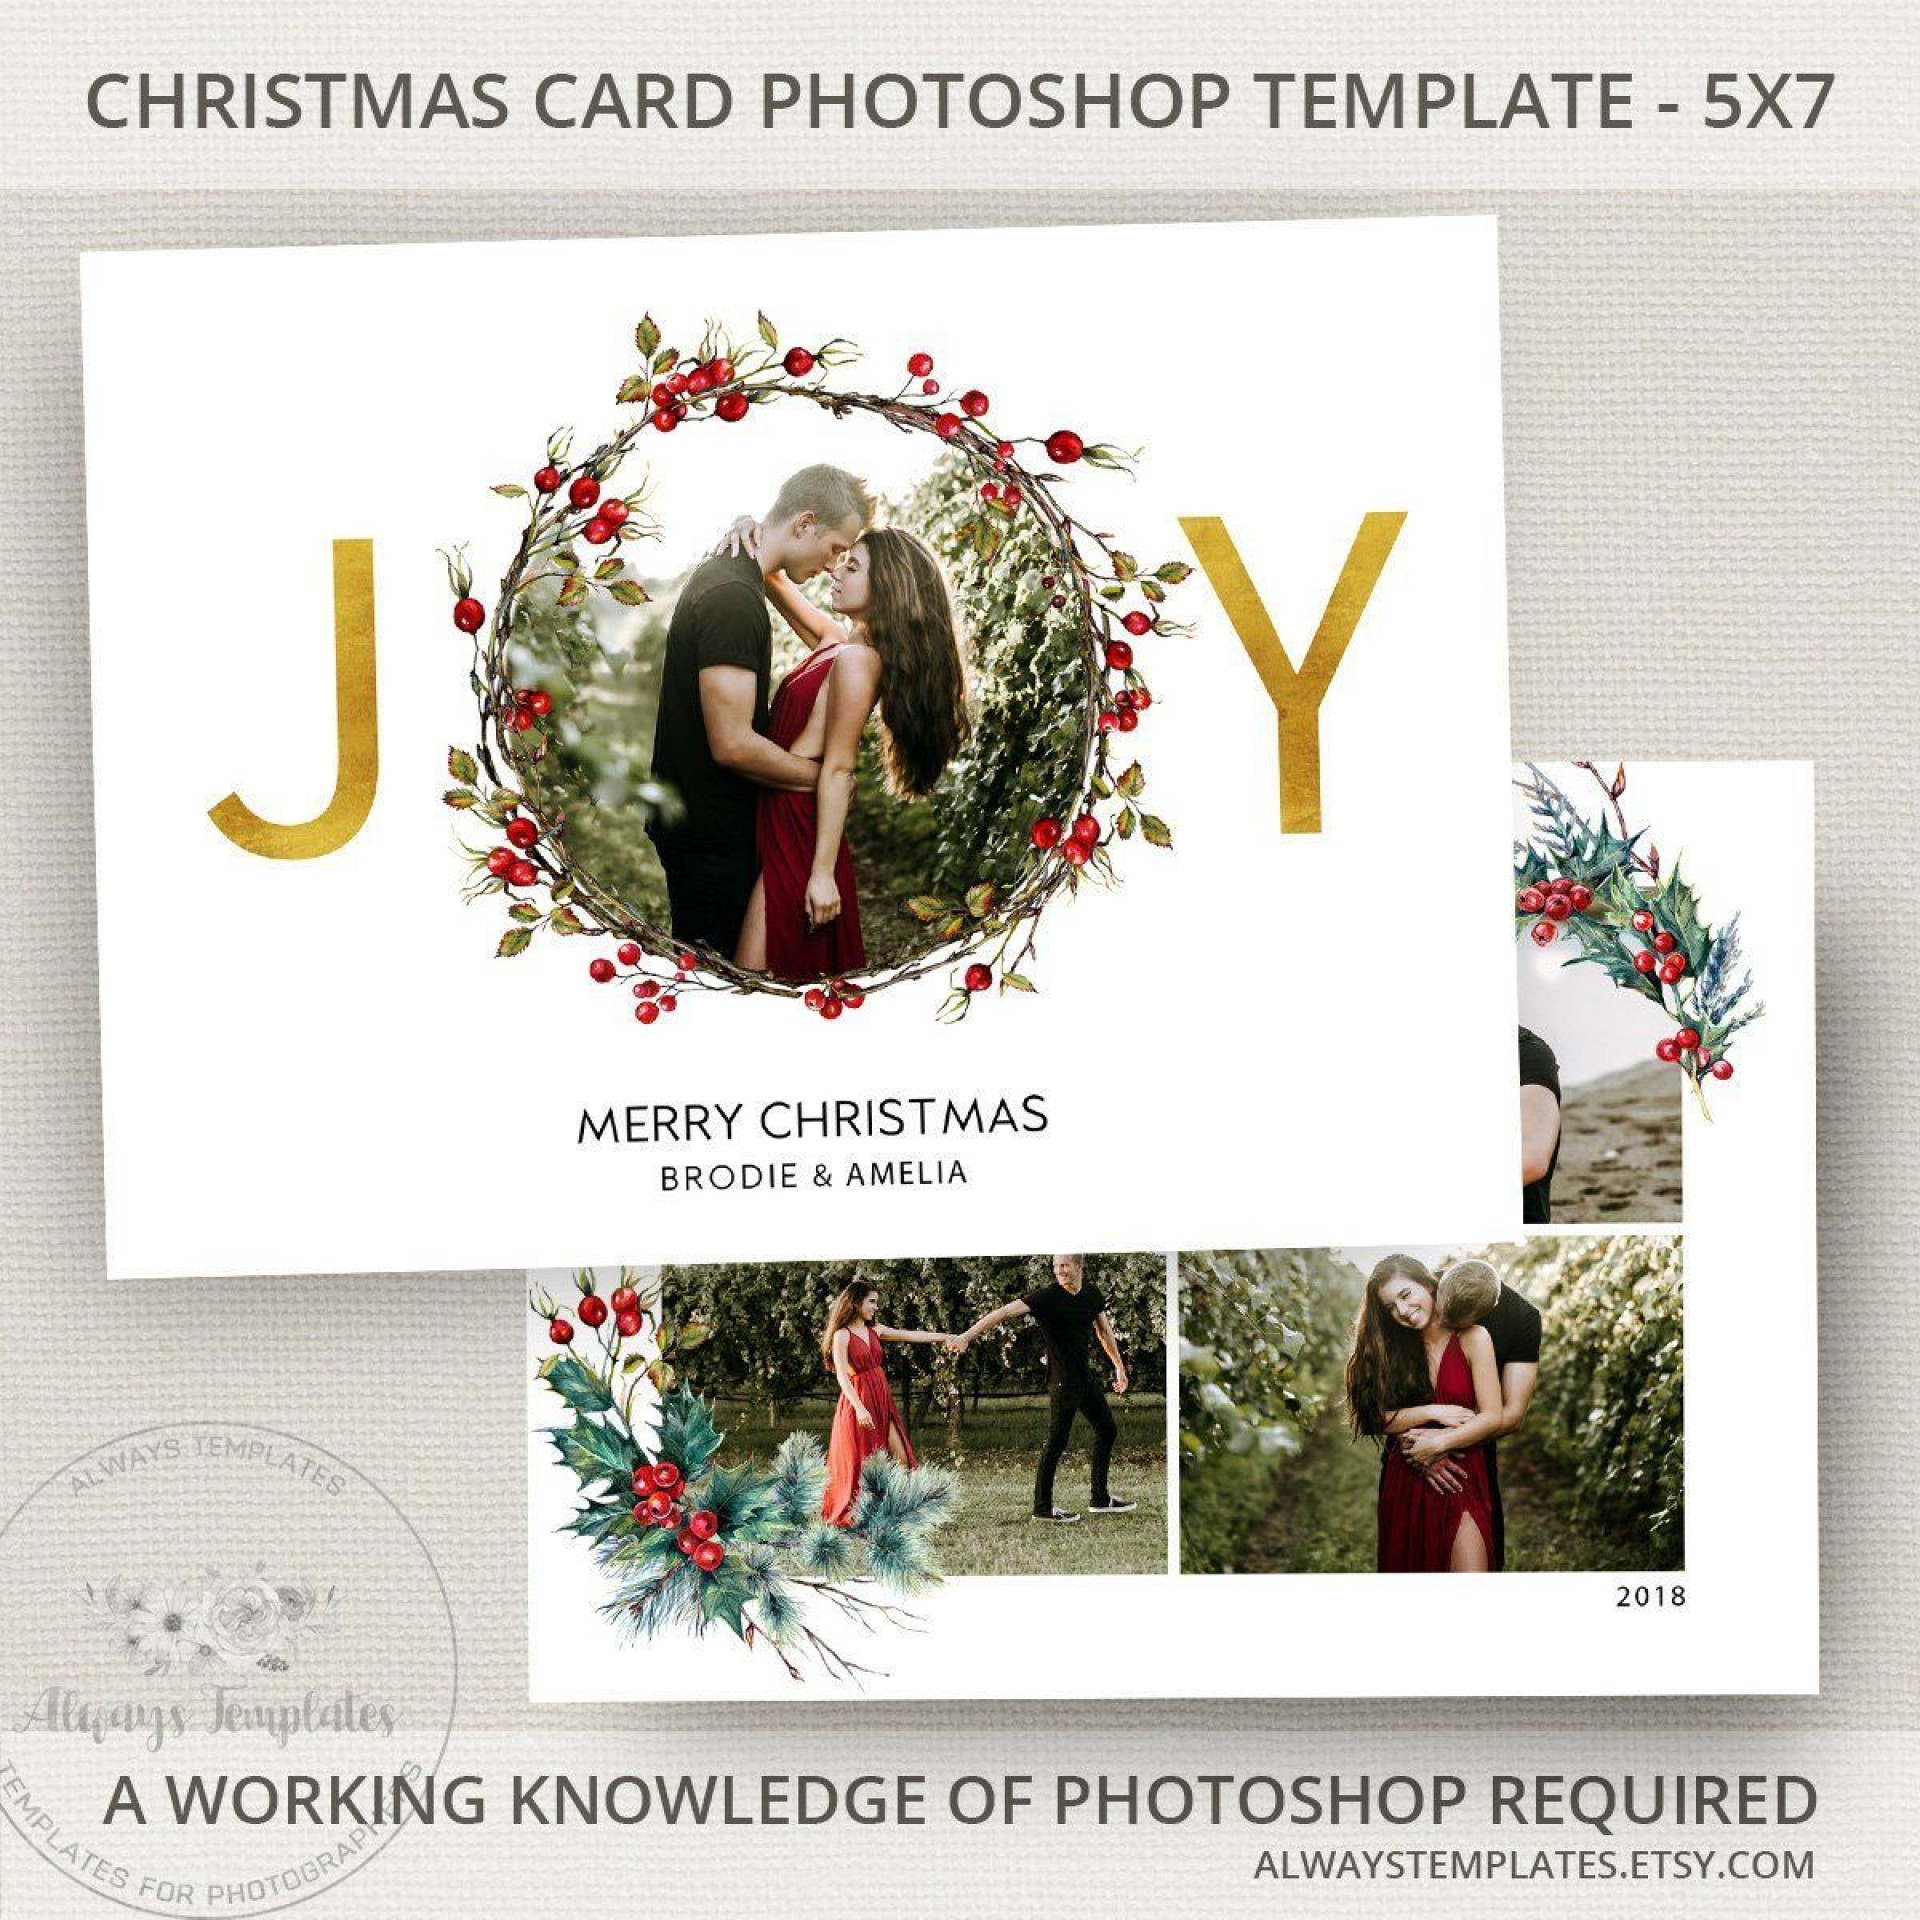 000 Excellent Christma Card Template Photoshop Image  Free Download Funny1920